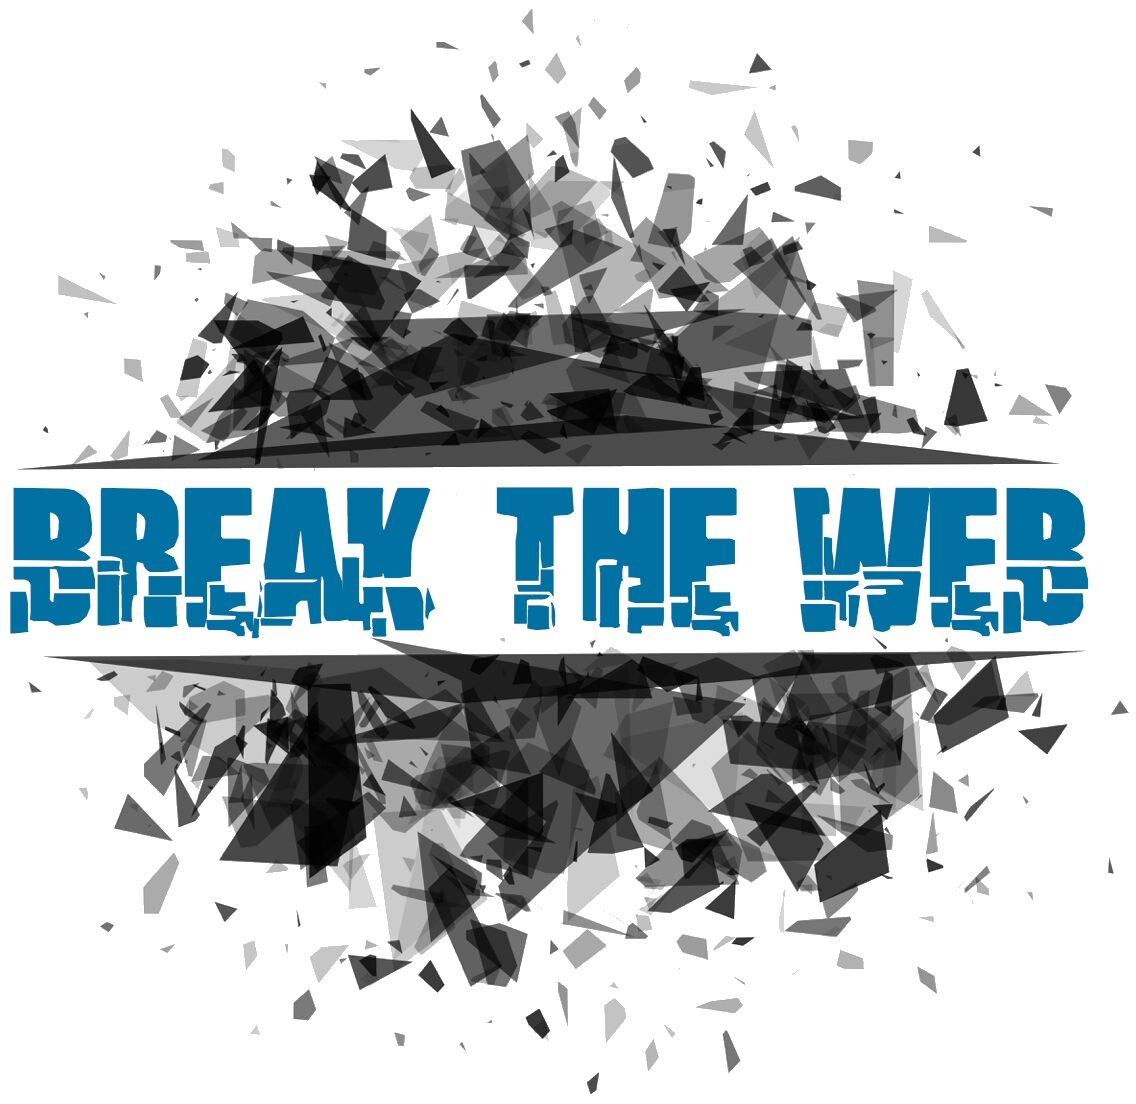 break-the-web